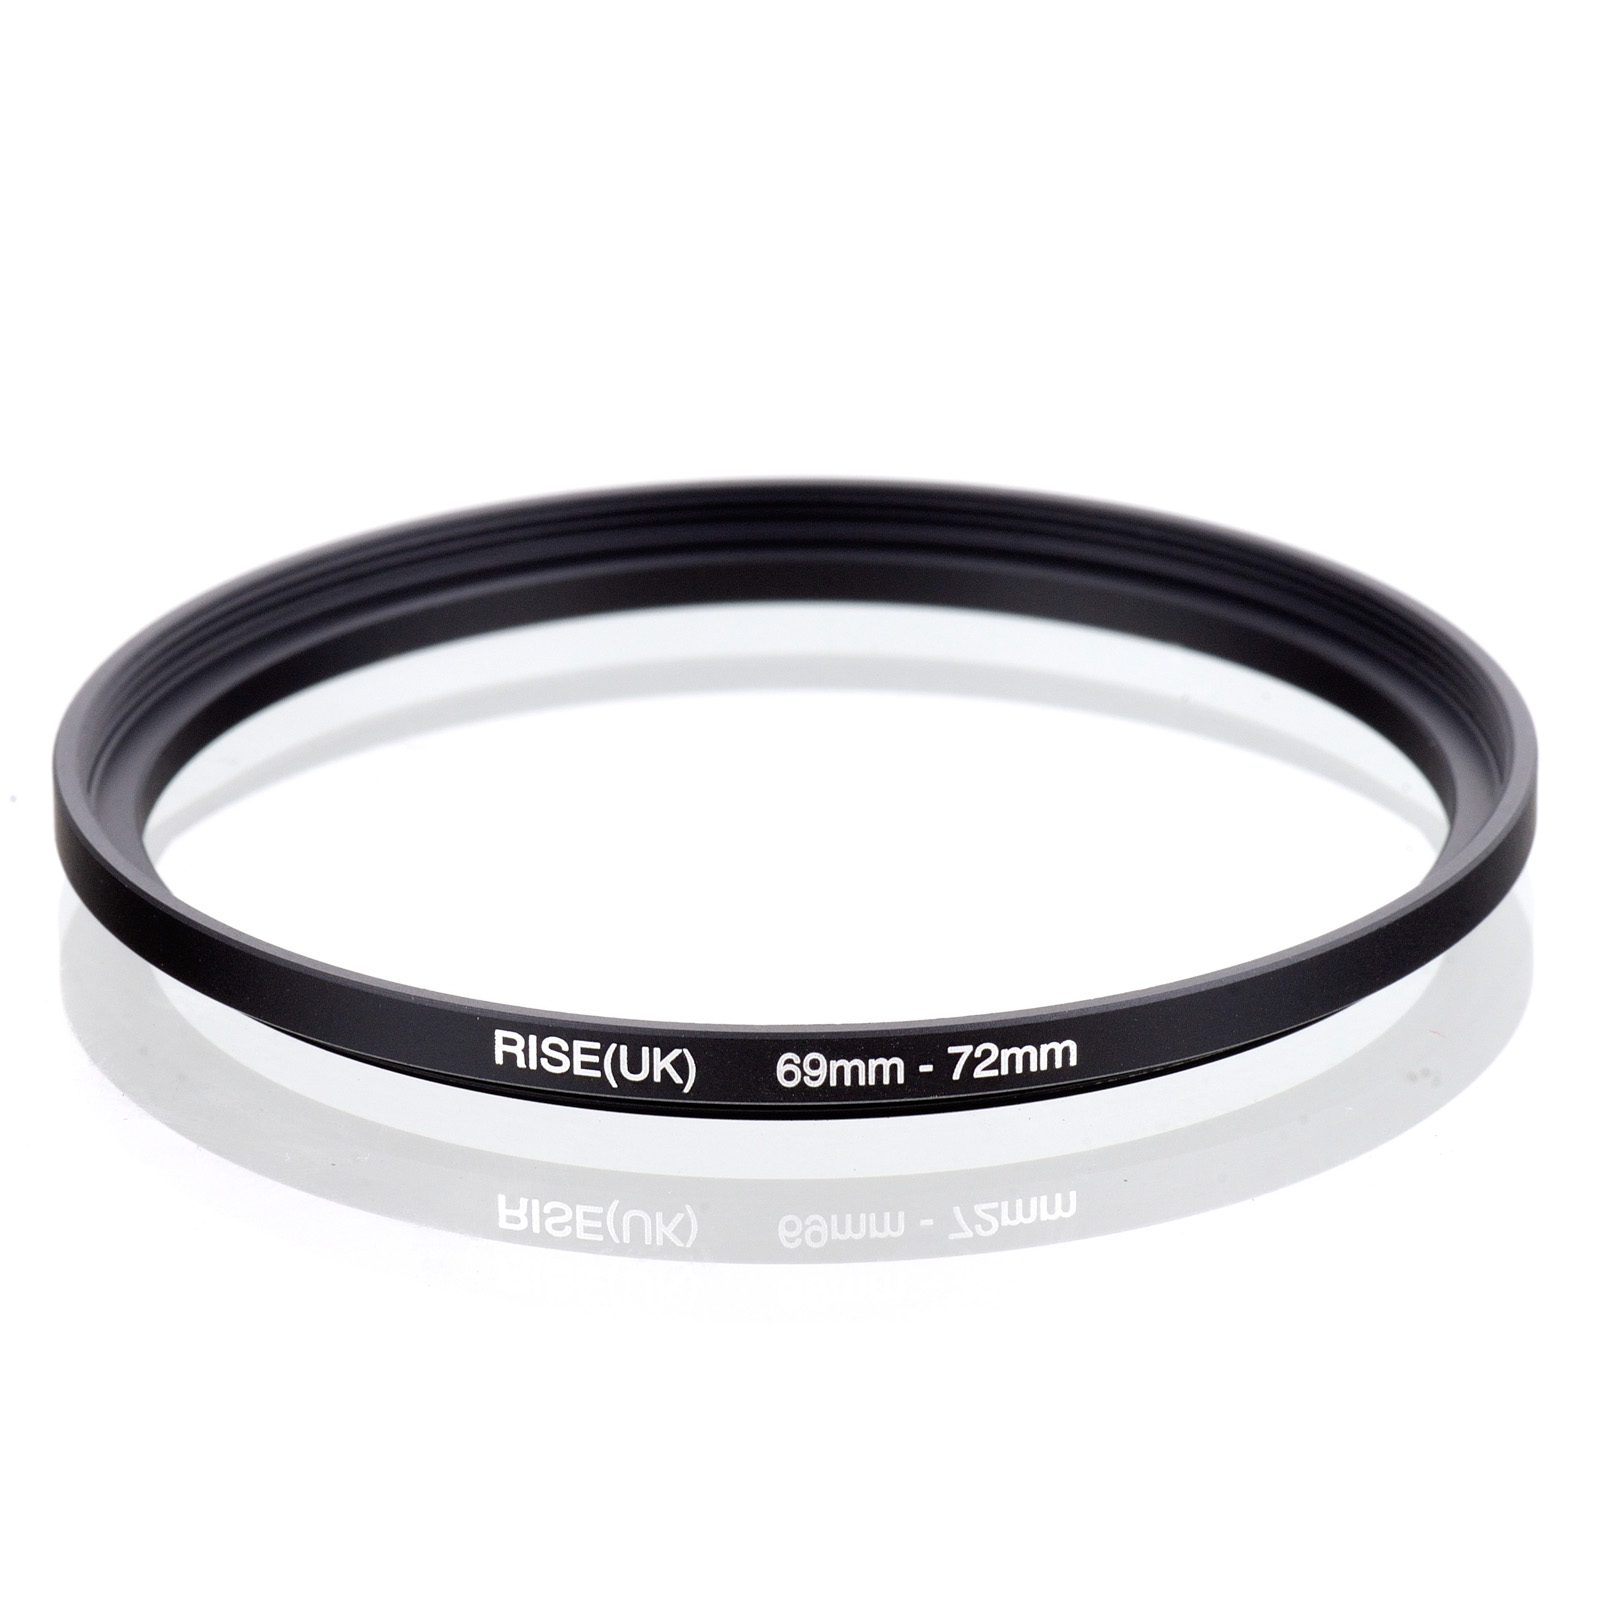 RISE(UK) 69mm-72mm 69-72 mm 69 to 72 Step up Filter Ring Adapter Blackfreeshipping